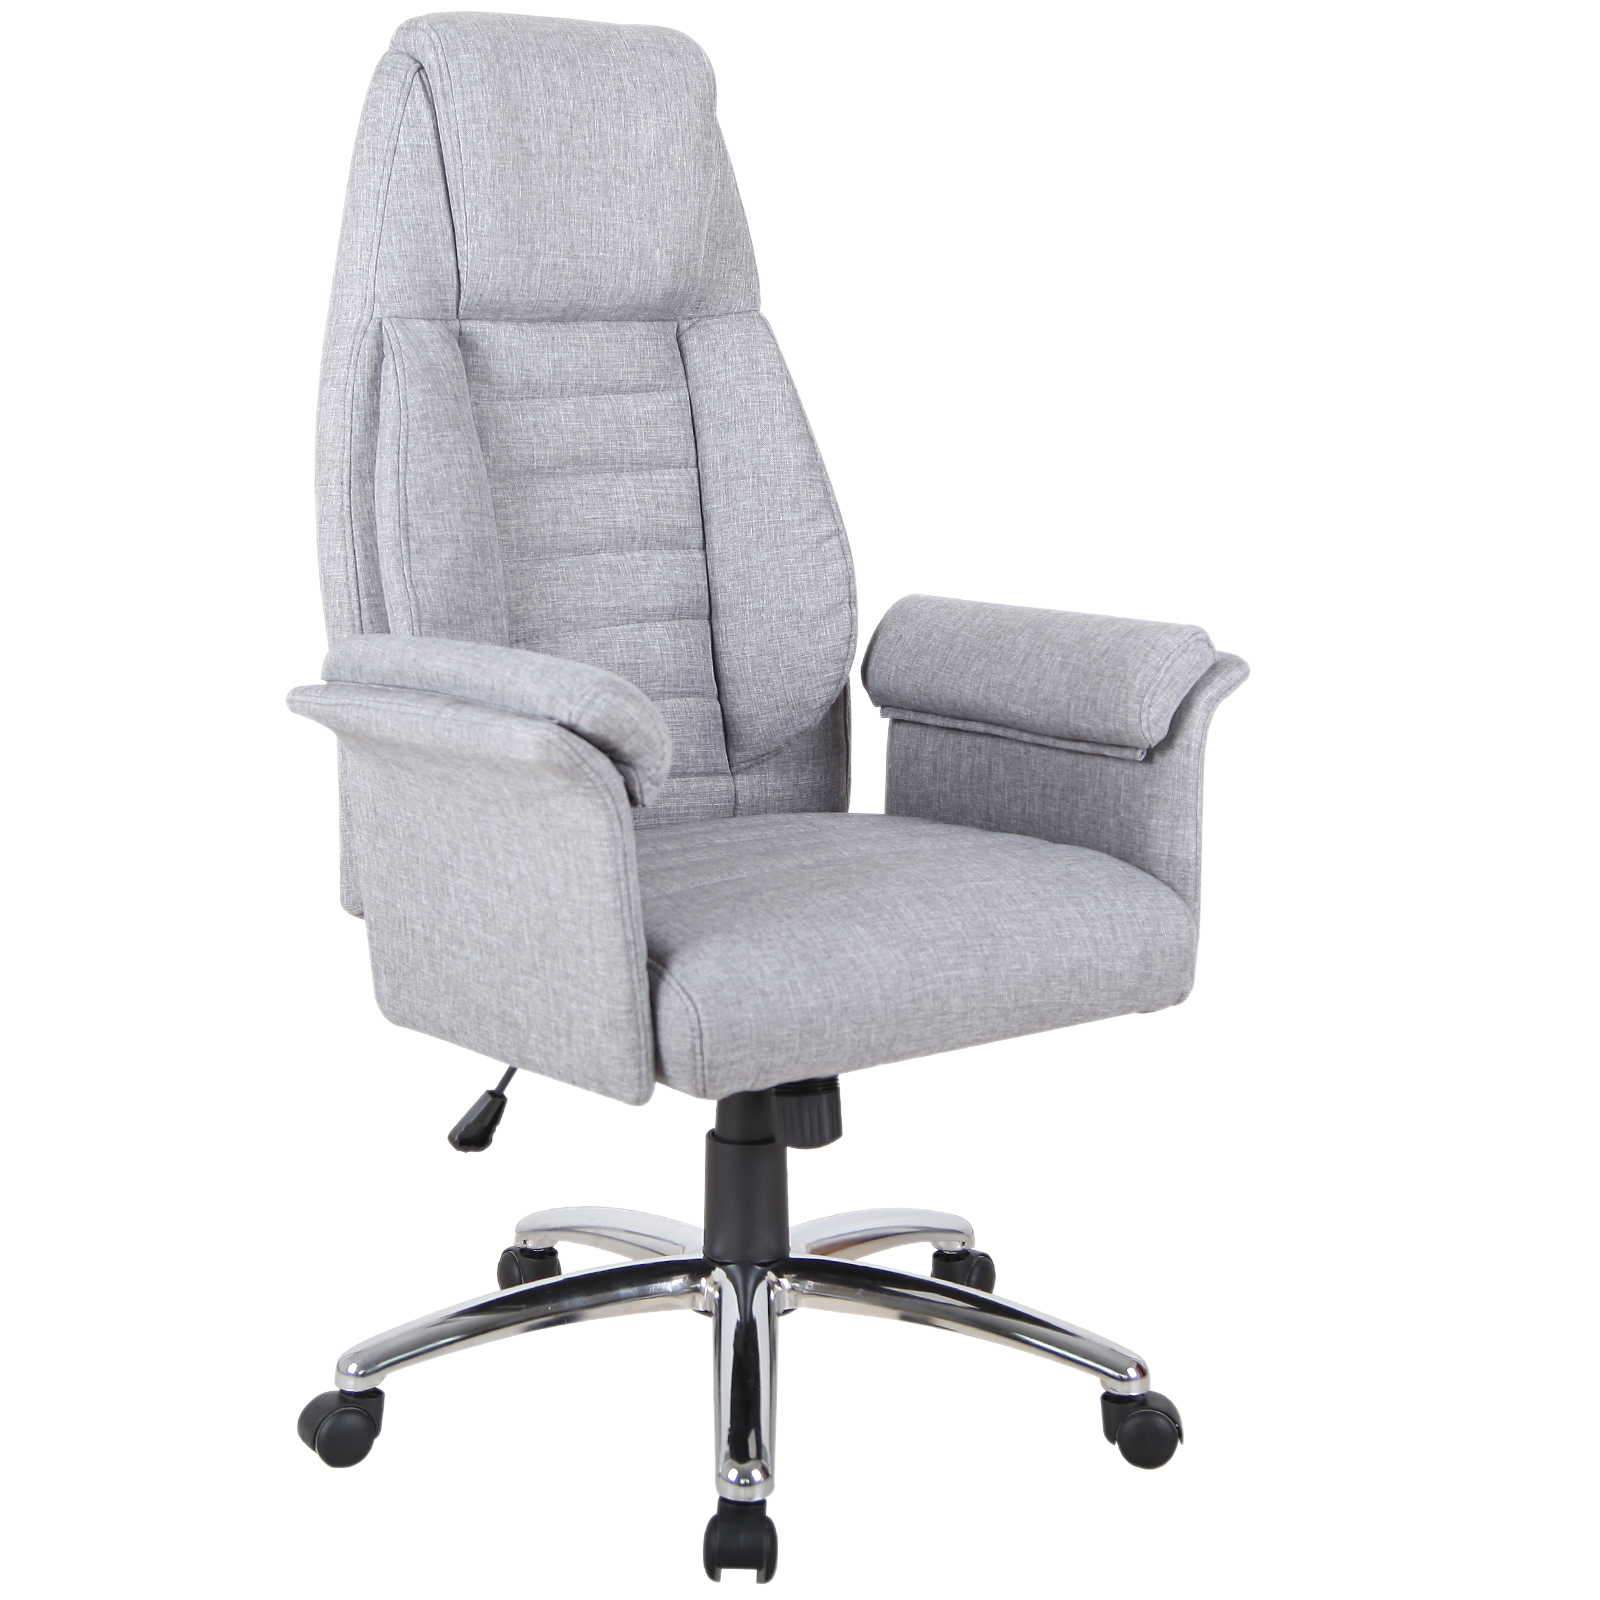 Details about HOMCOM High Back Fabric Swivel Executive Office computer  Chair - Gray